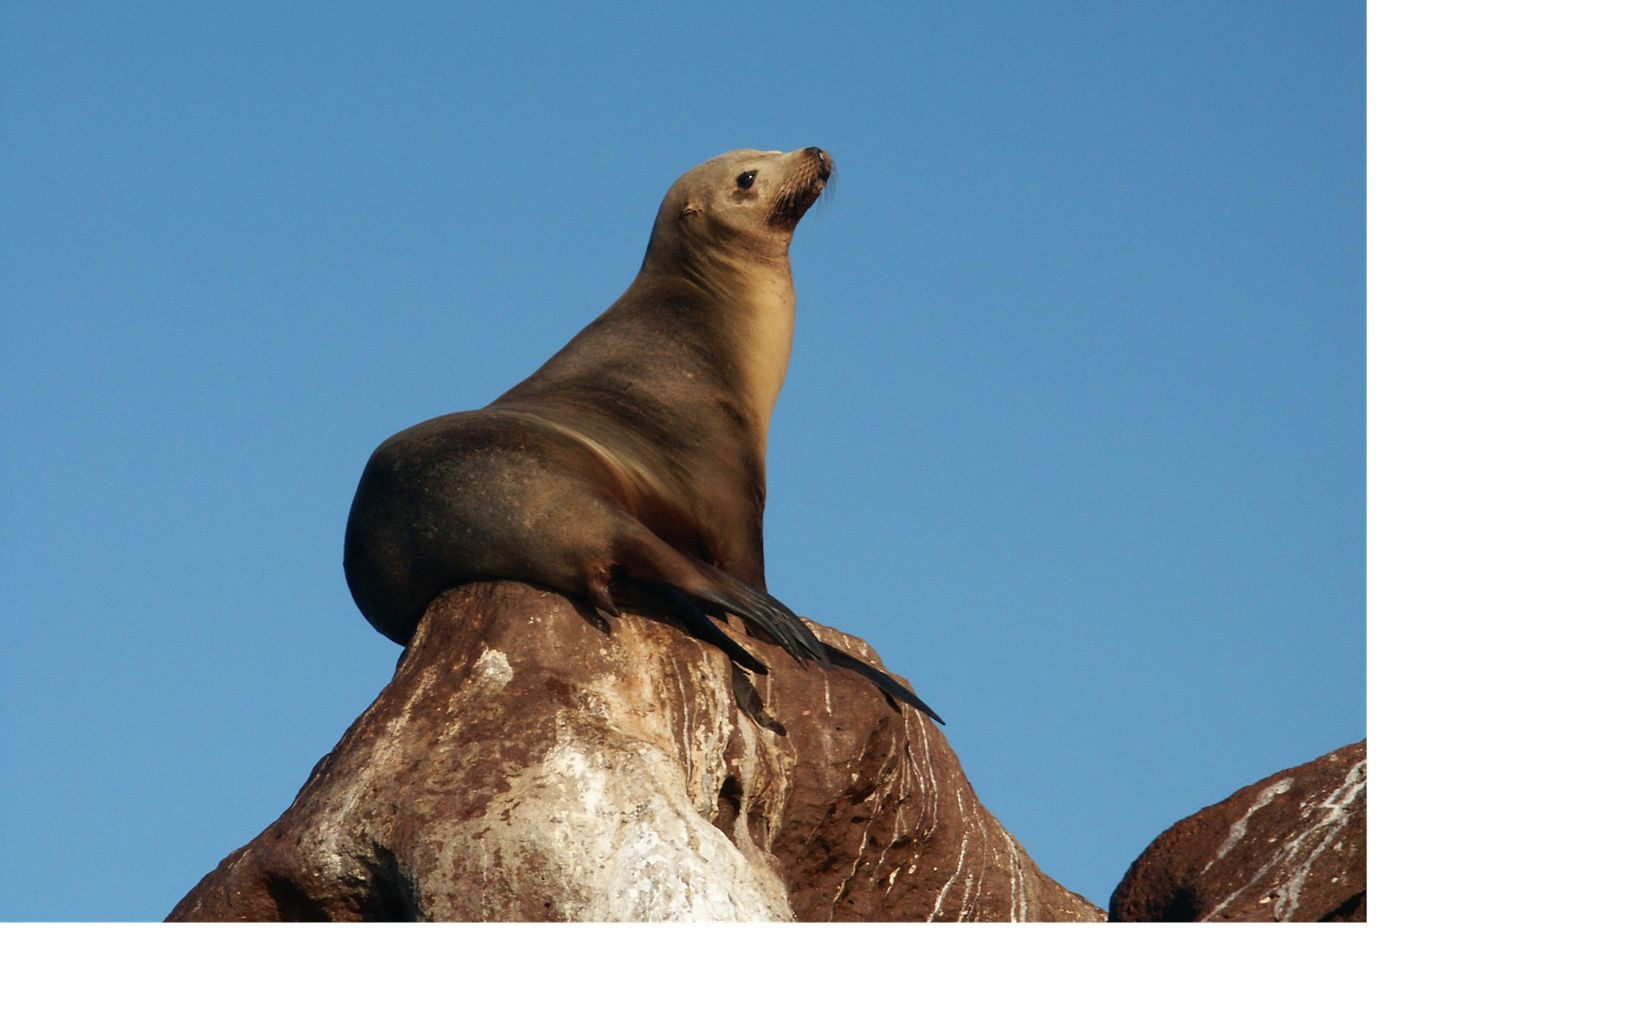 A California sea lion basks on a rock on Isla Guadalupe, the most distant land territory of the Baja Peninsula located in the eastern Pacific ocean, Mexico.